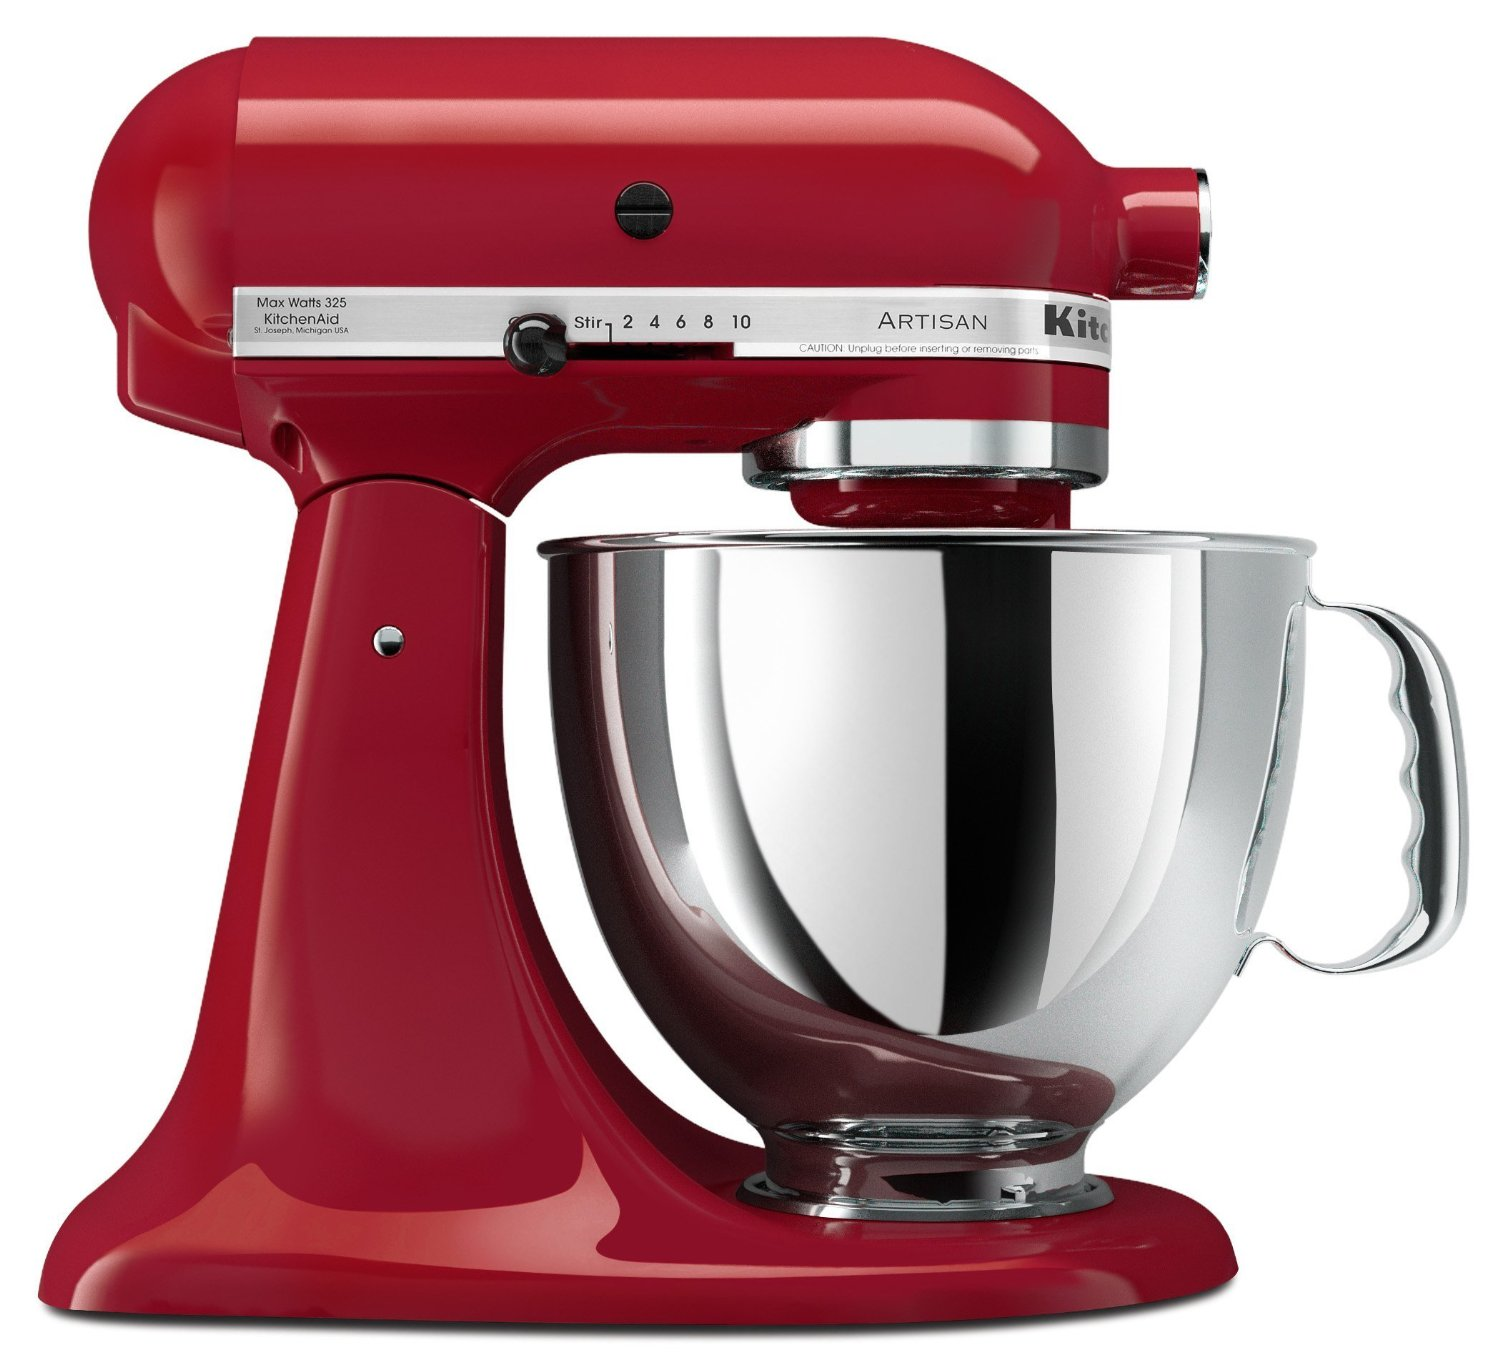 exceptional How Much Are Kitchen Aid Mixers #9: 81Qpugh4riS._SL1500_. I LOVE my KitchenAid Mixer!